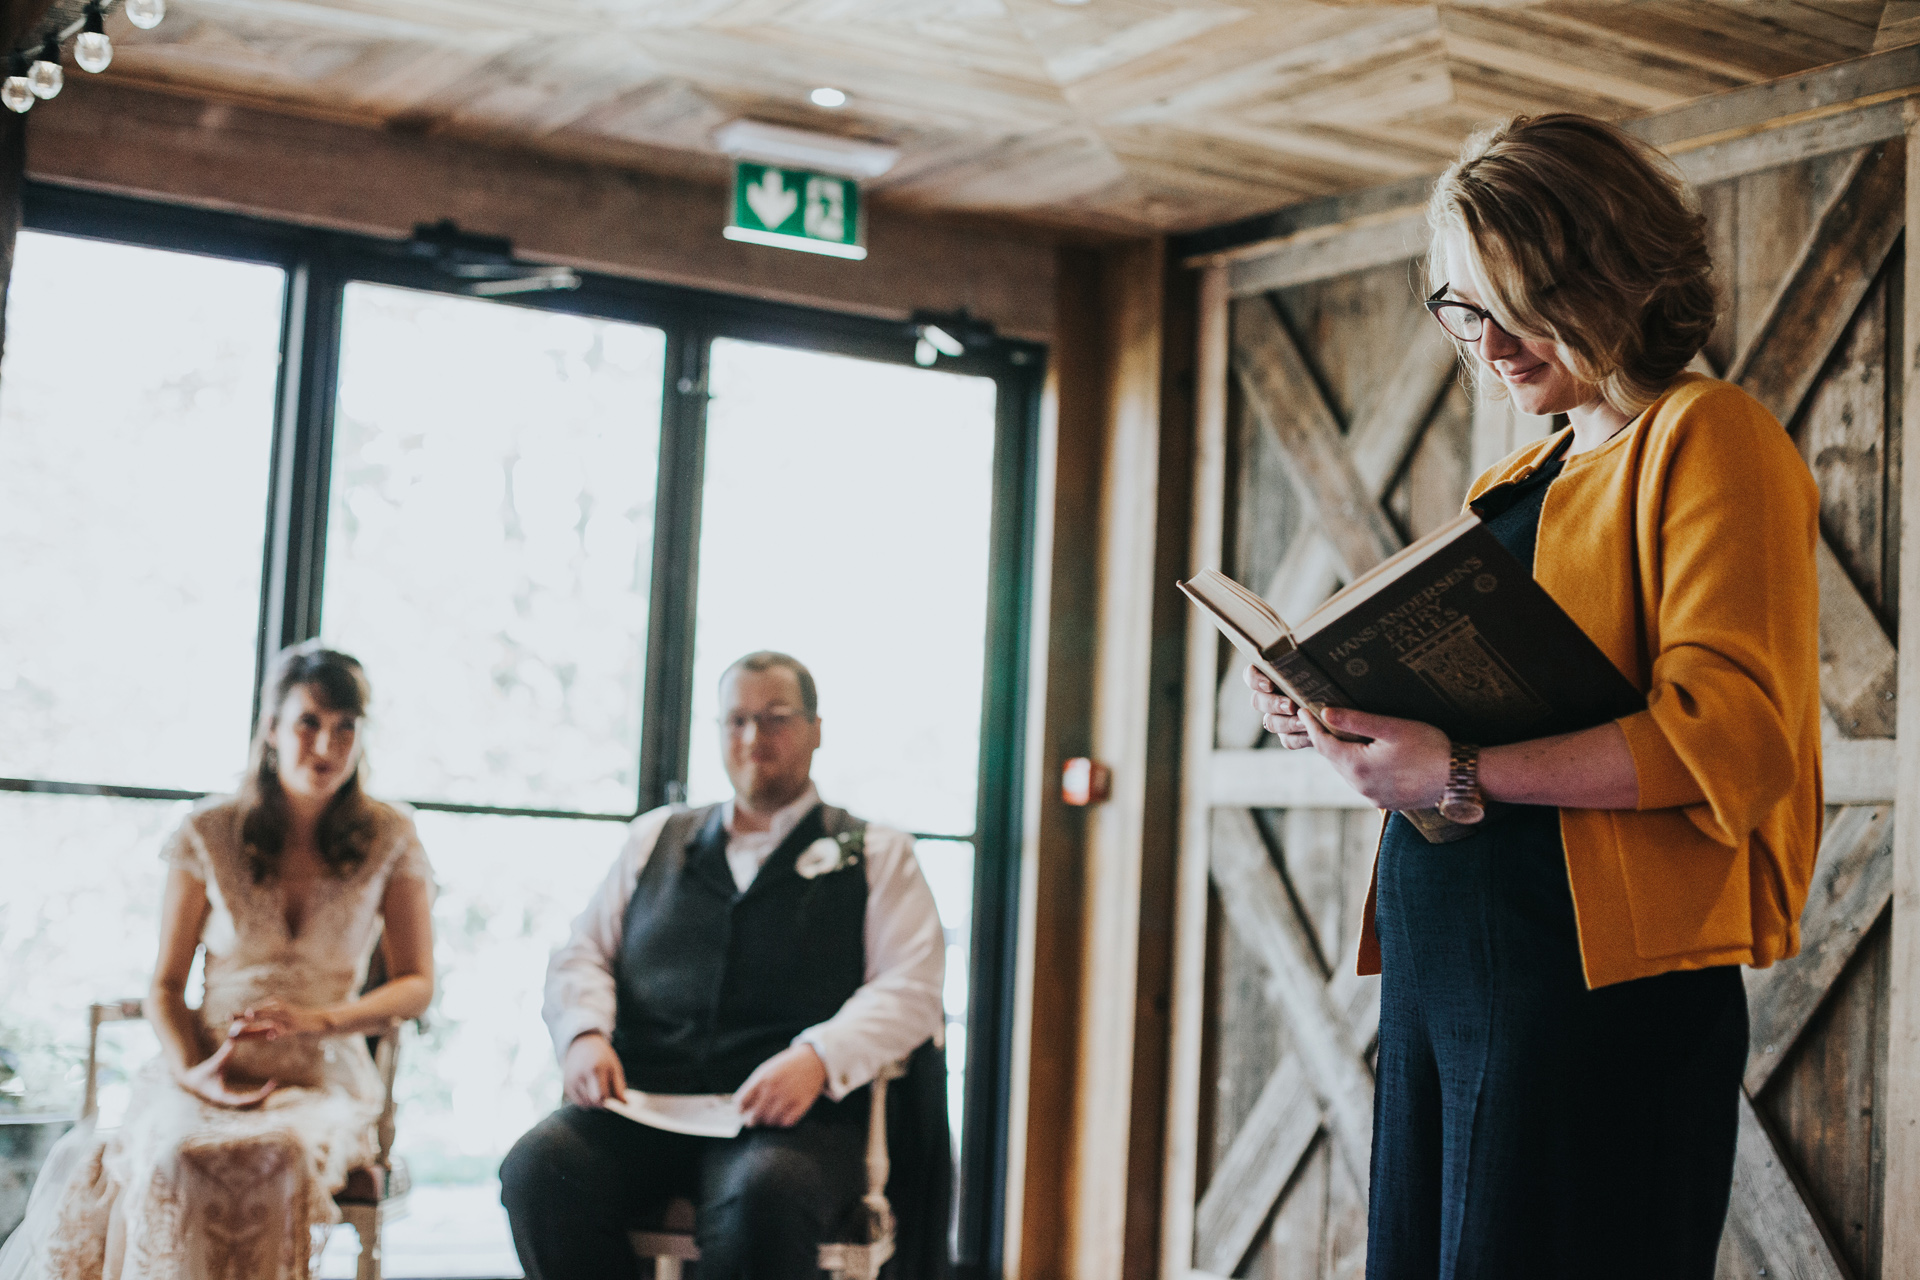 Celebrant and friend gives a reading to open the wedding ceremony, she is wearing a snazzy mustard cardigan.